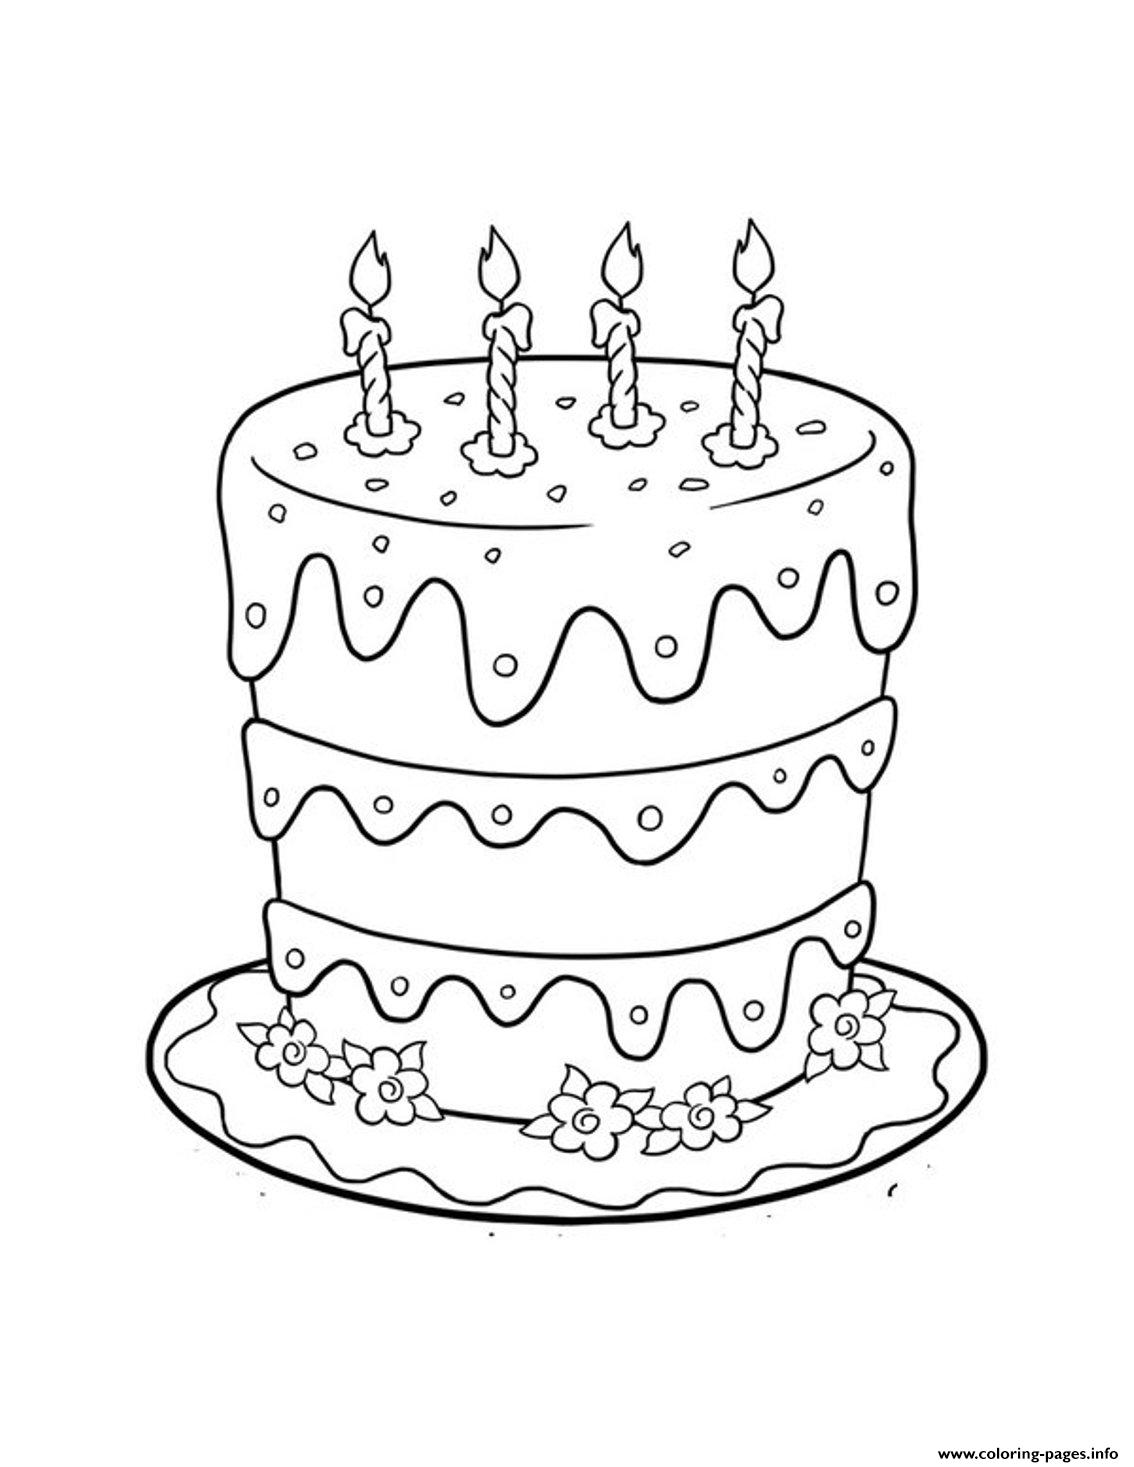 lol cake coloring pages birthday cake coloring pages to download and print for free lol pages cake coloring